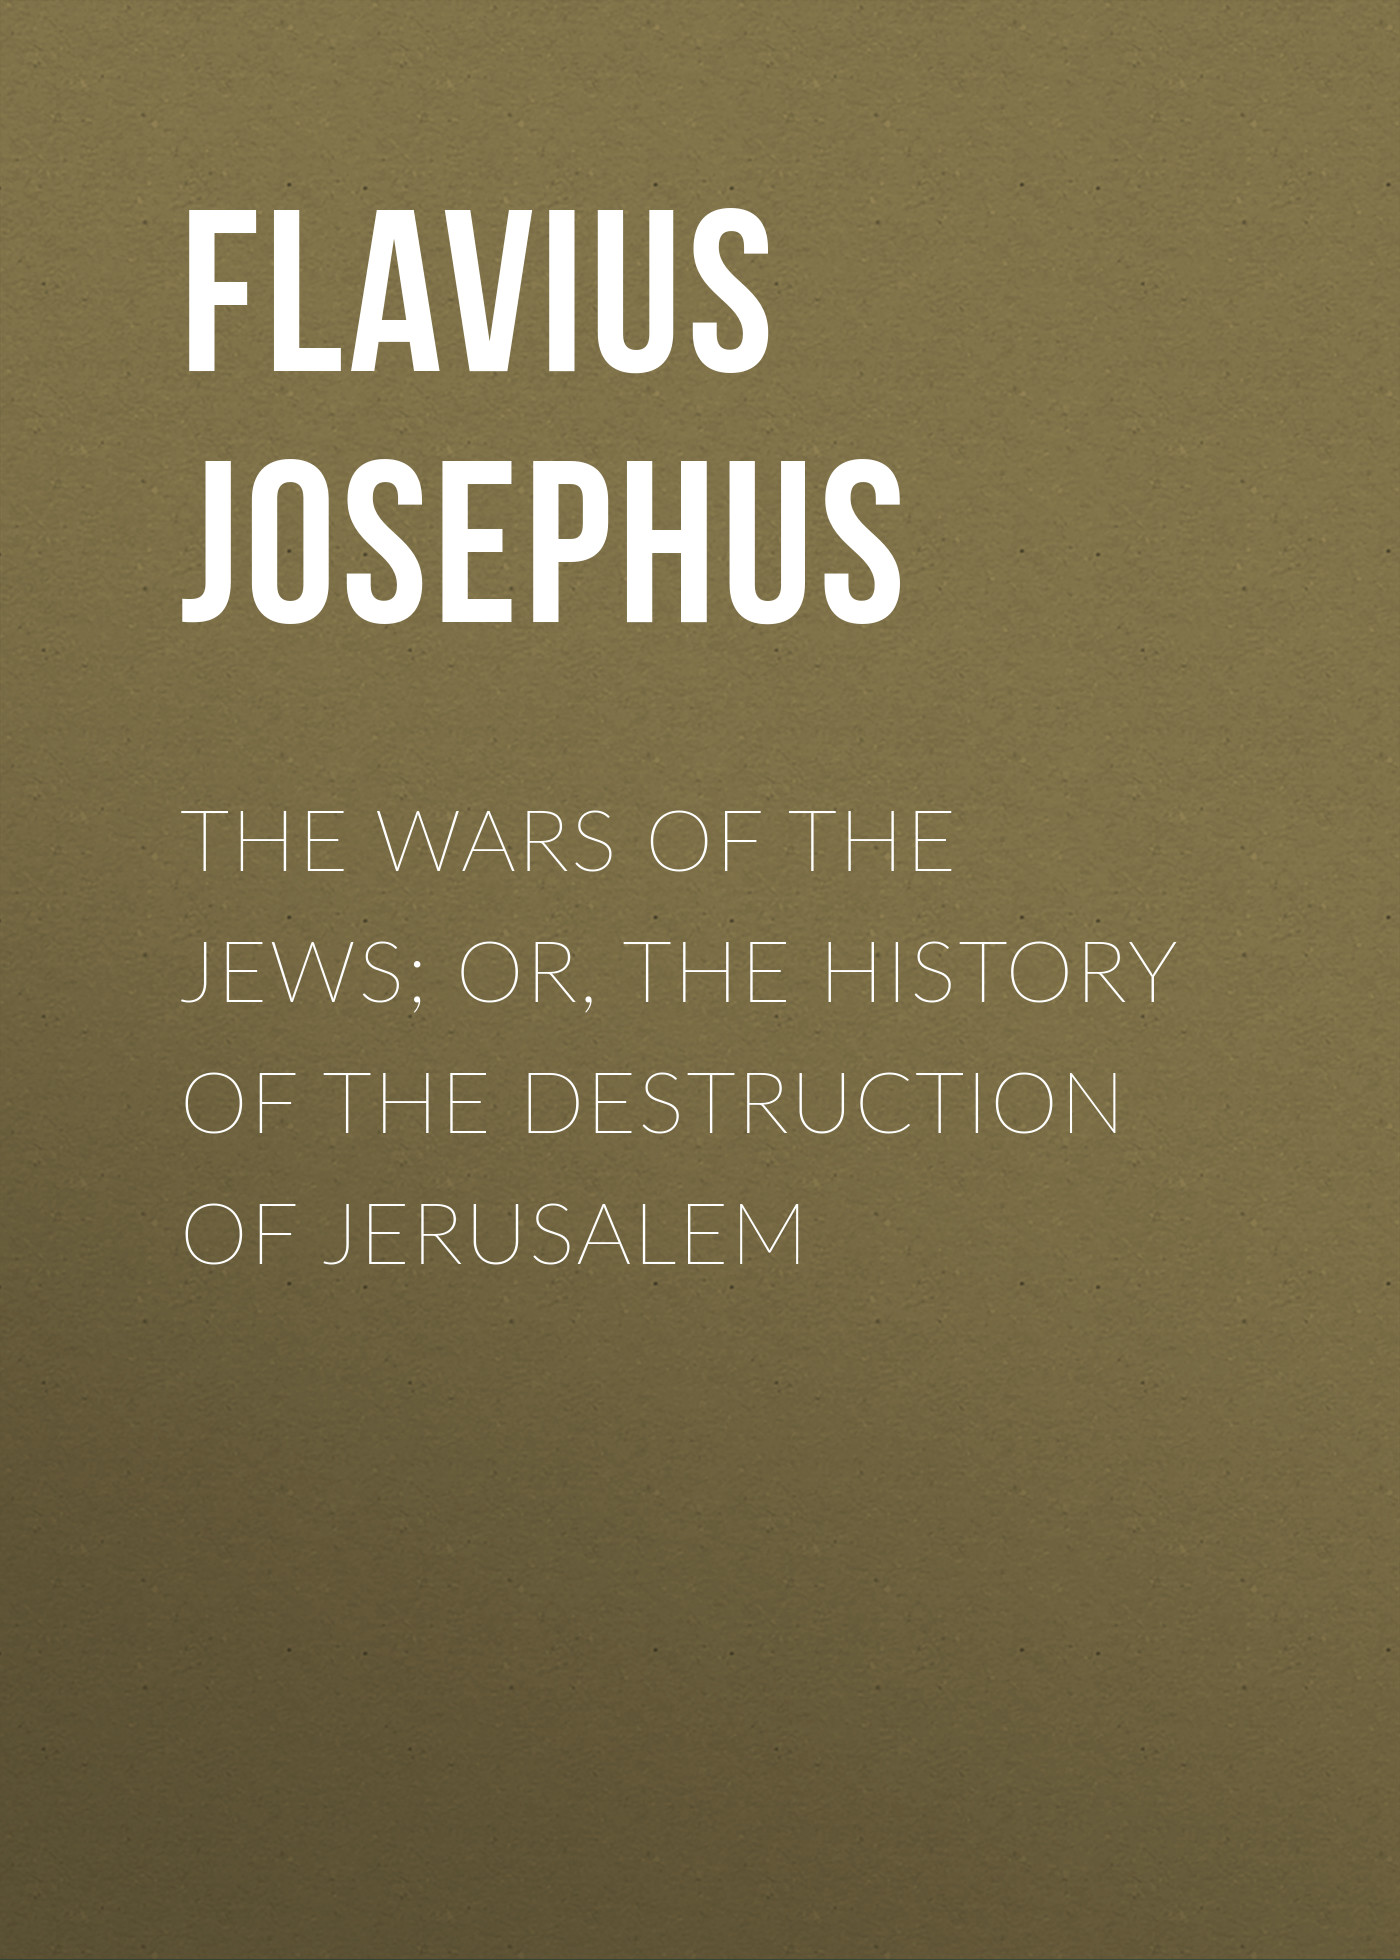 Flavius Josephus The Wars of the Jews; Or, The History of the Destruction of Jerusalem doron rabinovici eichmann s jews the jewish administration of holocaust vienna 1938 1945 isbn 9780745692920